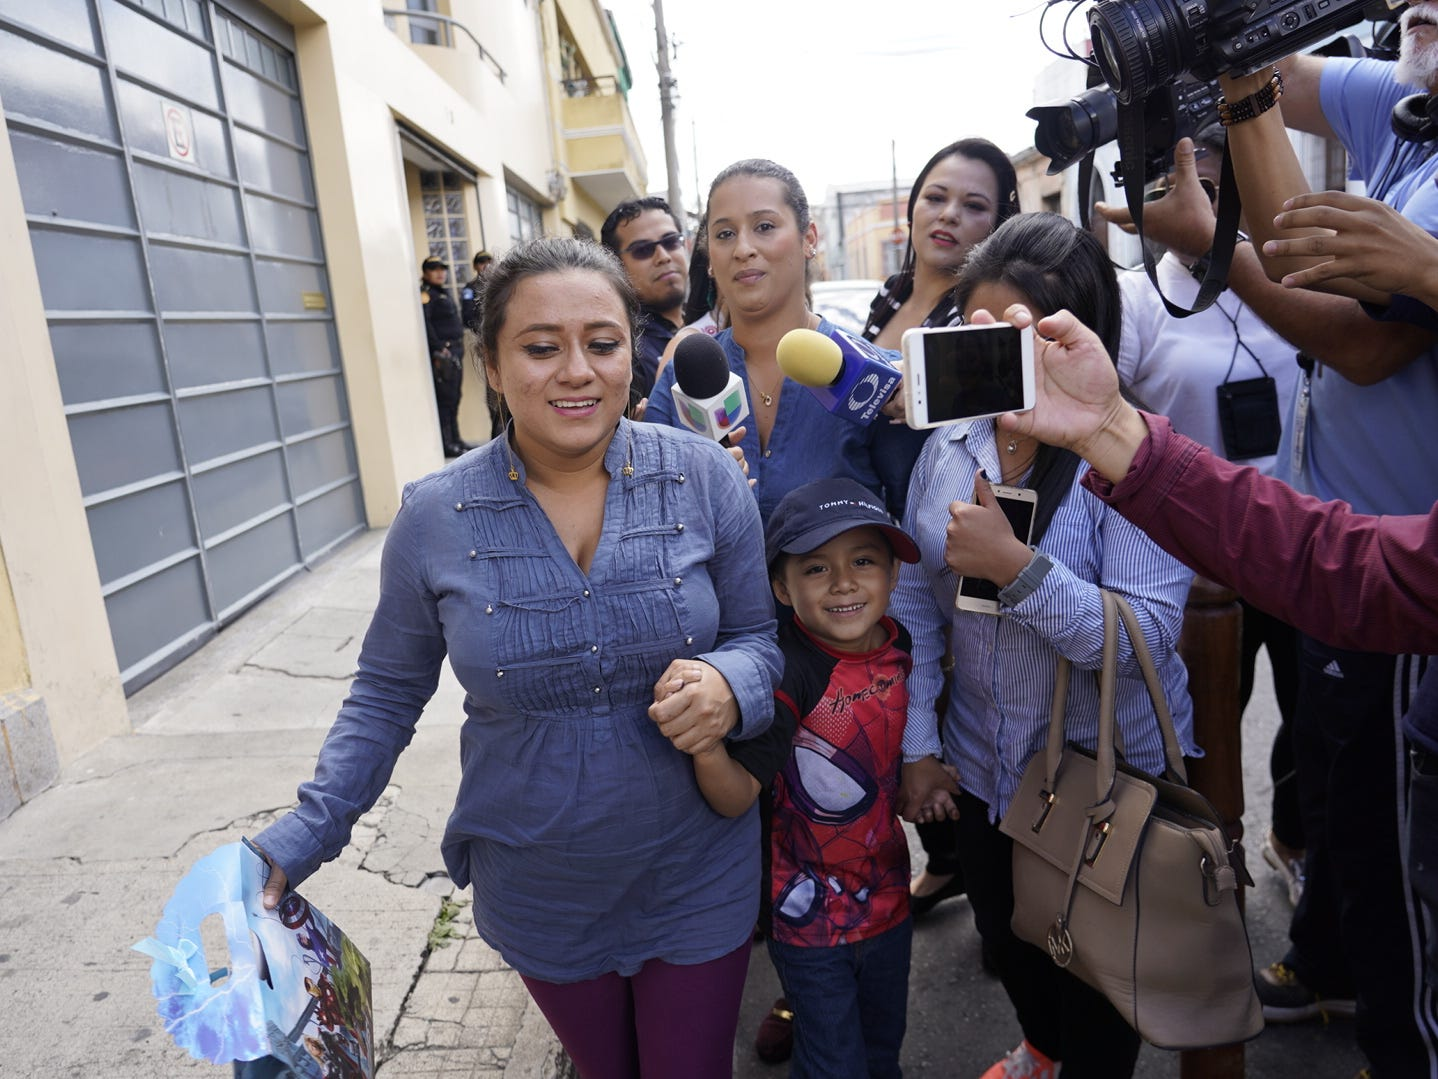 Leo Jeancarlo DeLeon is reunited with his mother, Lourdes Marianela DeLeon, in Guatemala on Aug. 7, 2018.